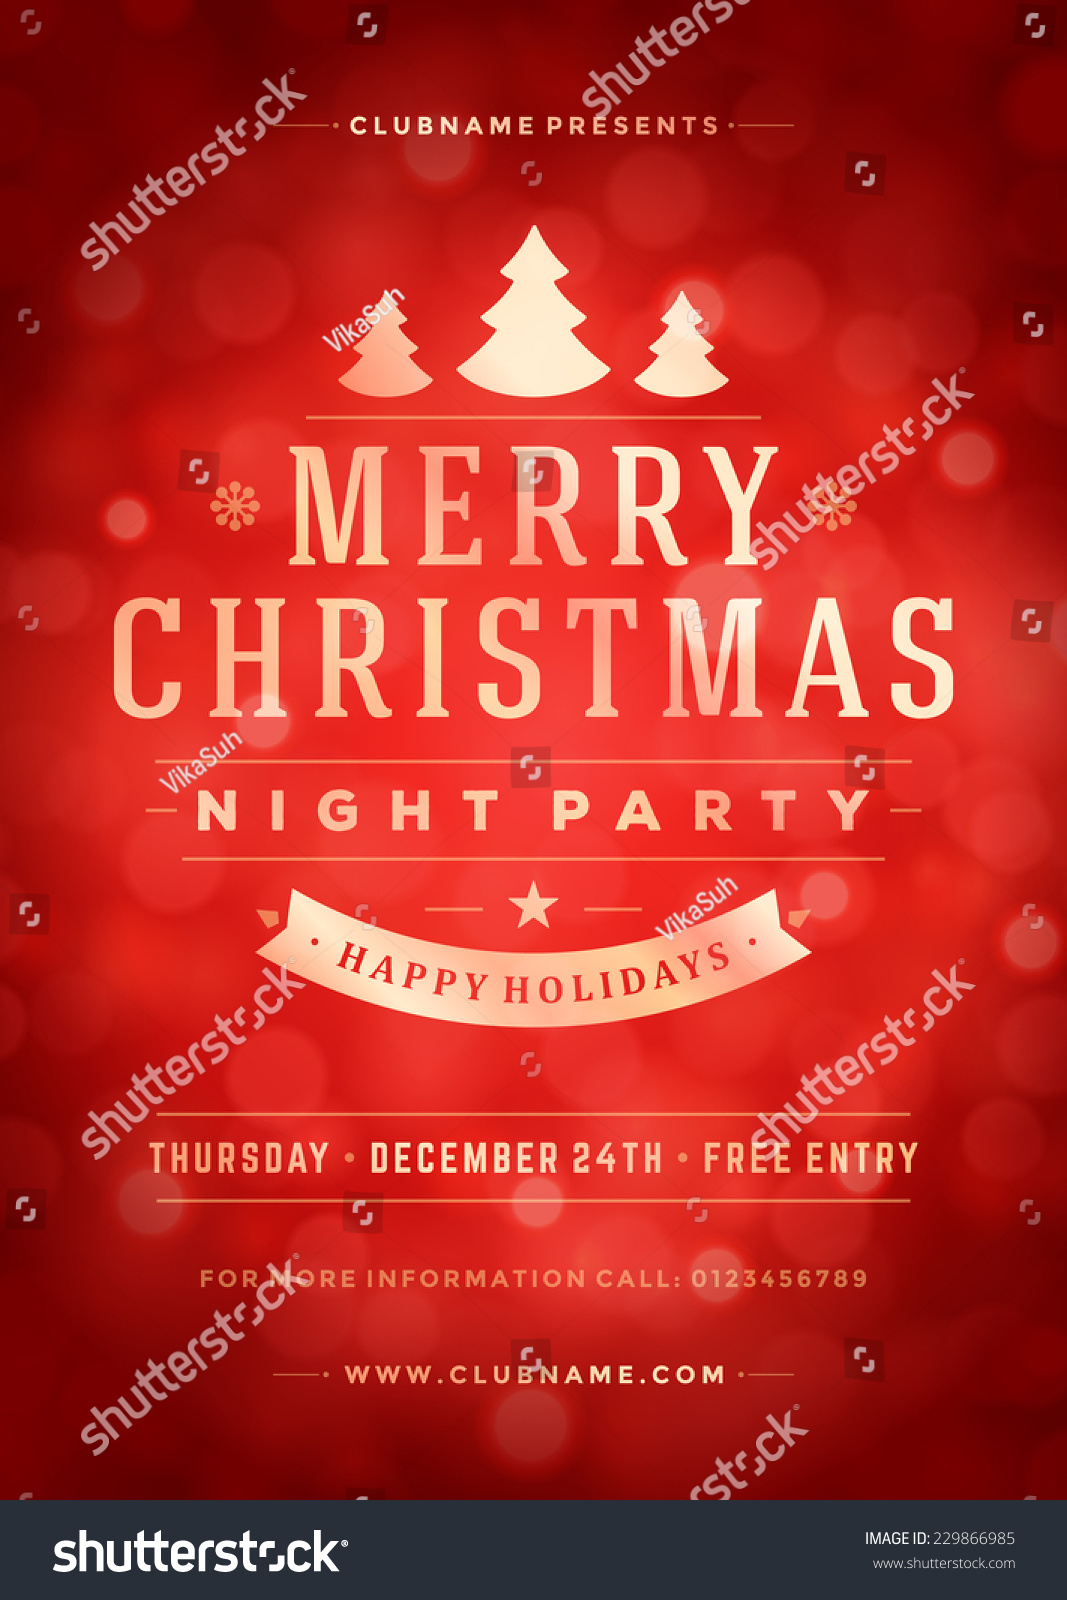 christmas night party poster flyer vector stock vector  christmas night party poster or flyer vector illustration merry christmas design template vector background